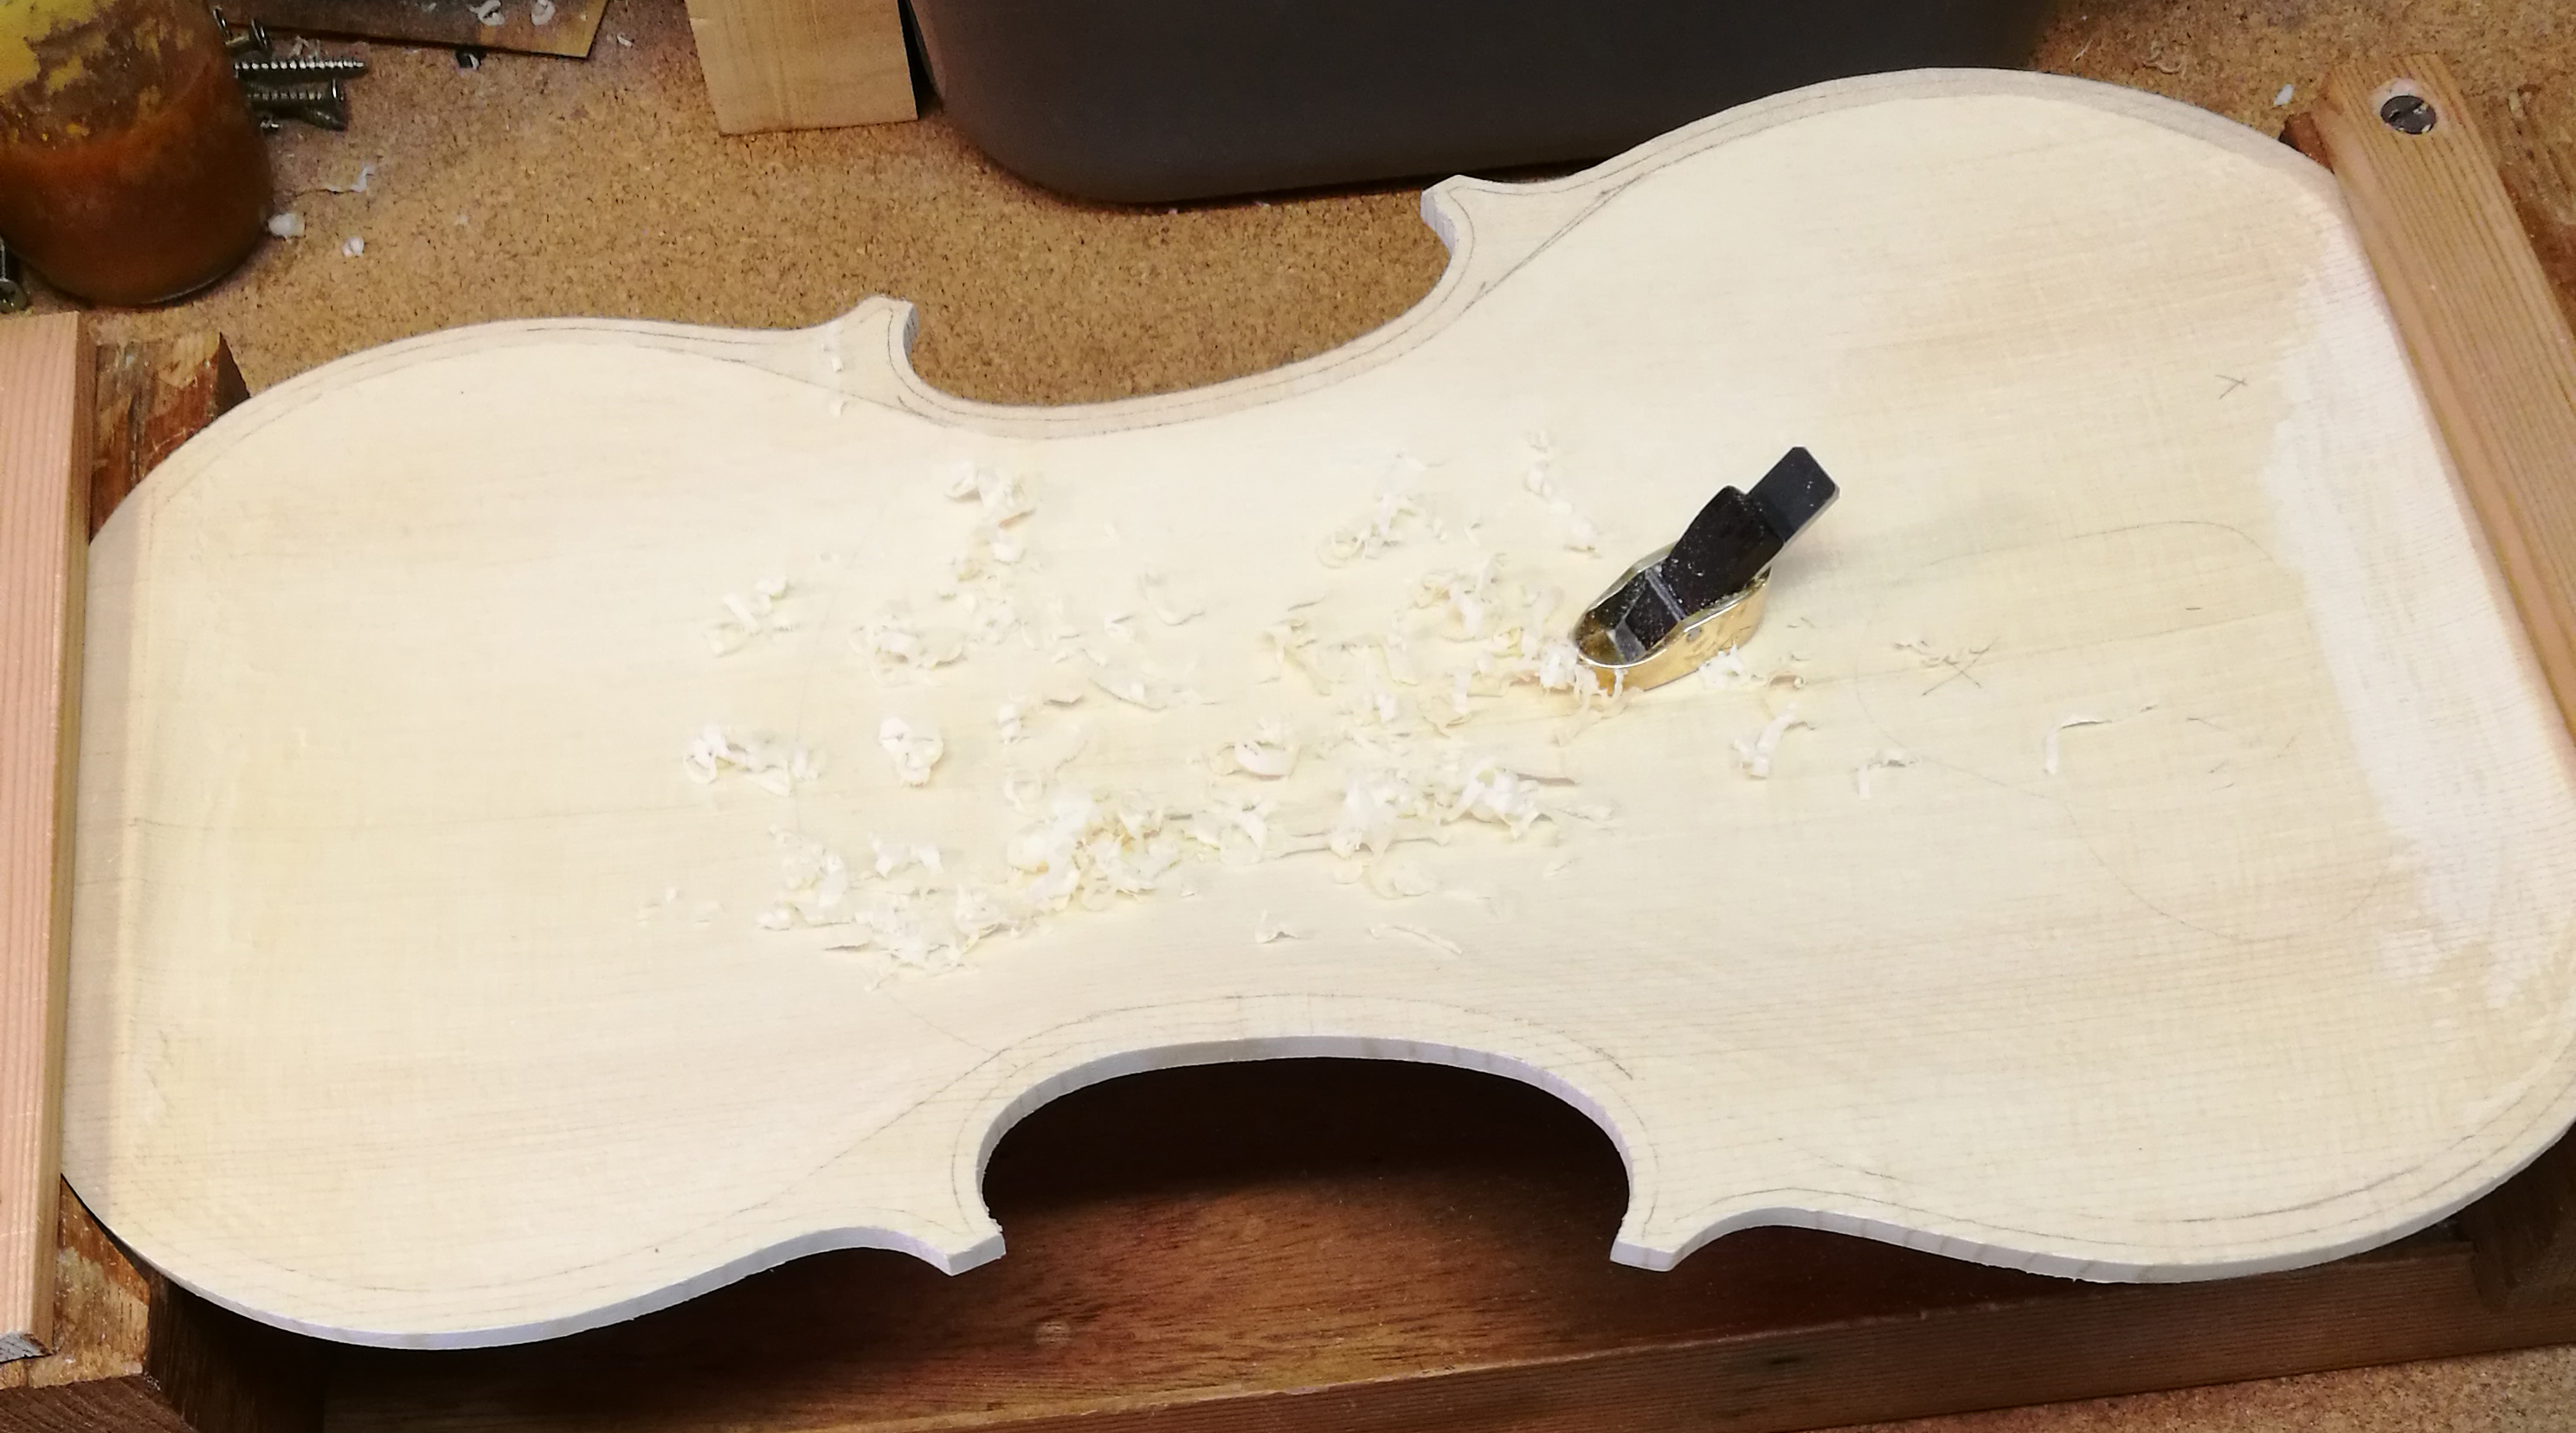 Violin in the process of being crafted